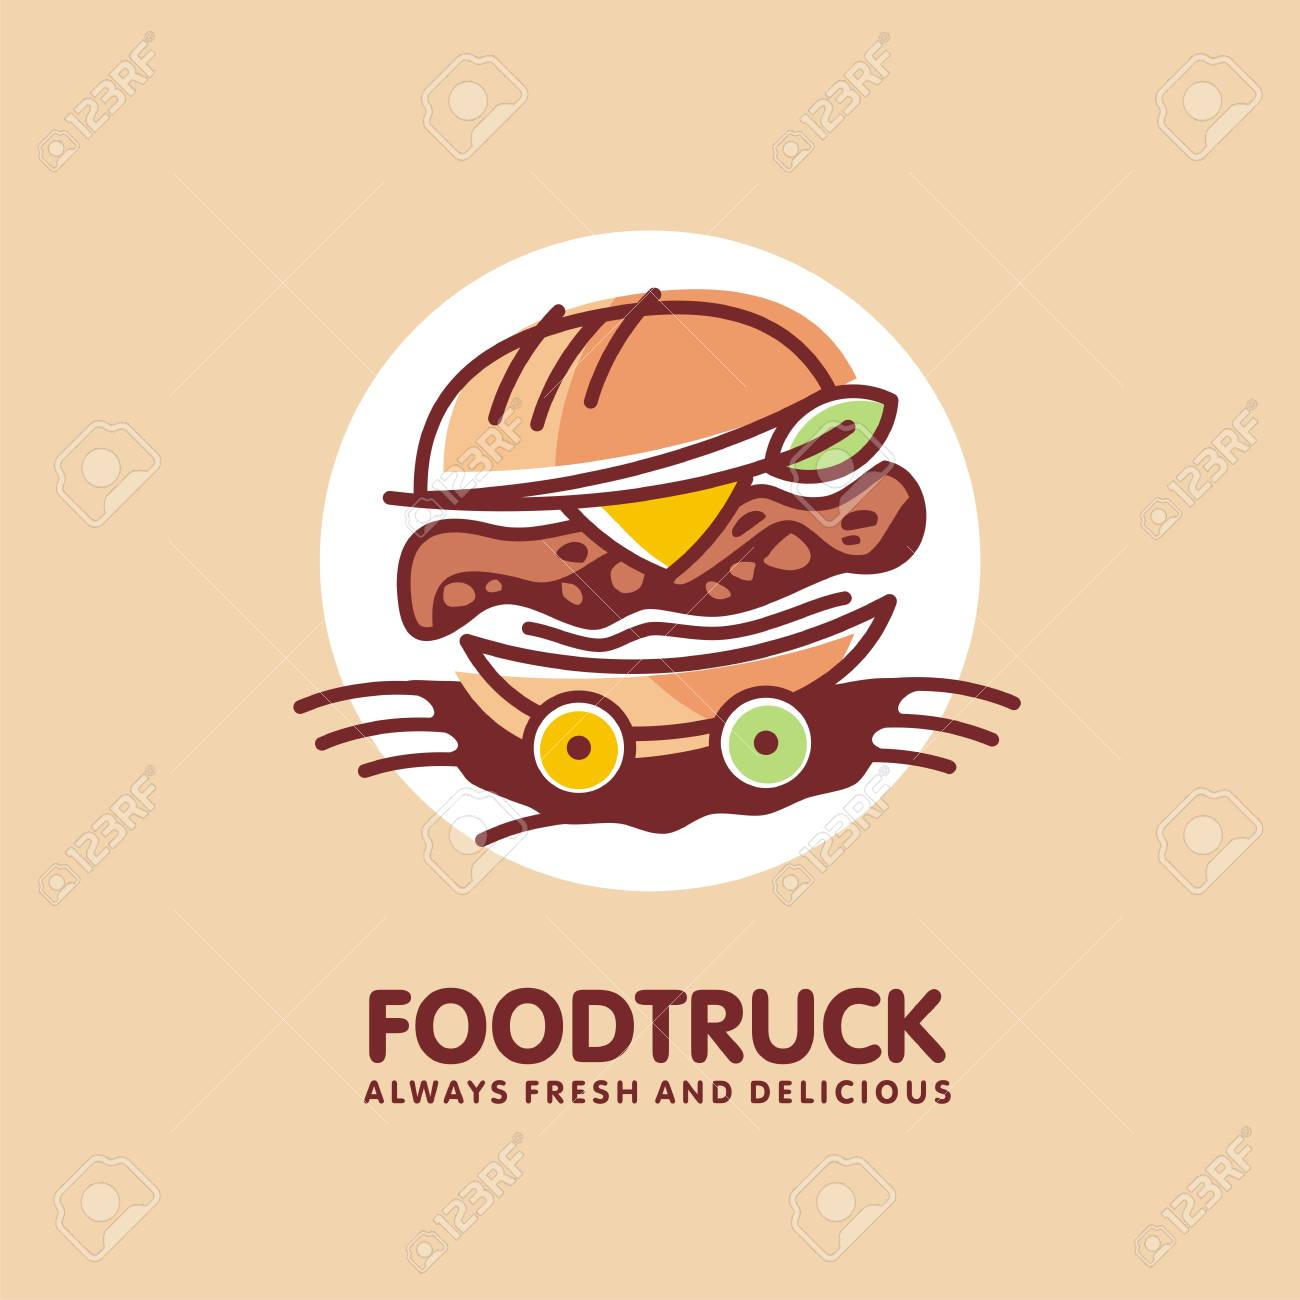 Food Truck Logo Design Idea With Juicy Burger On The Wheels Royalty Free Cliparts Vectors And Stock Illustration Image 122714524